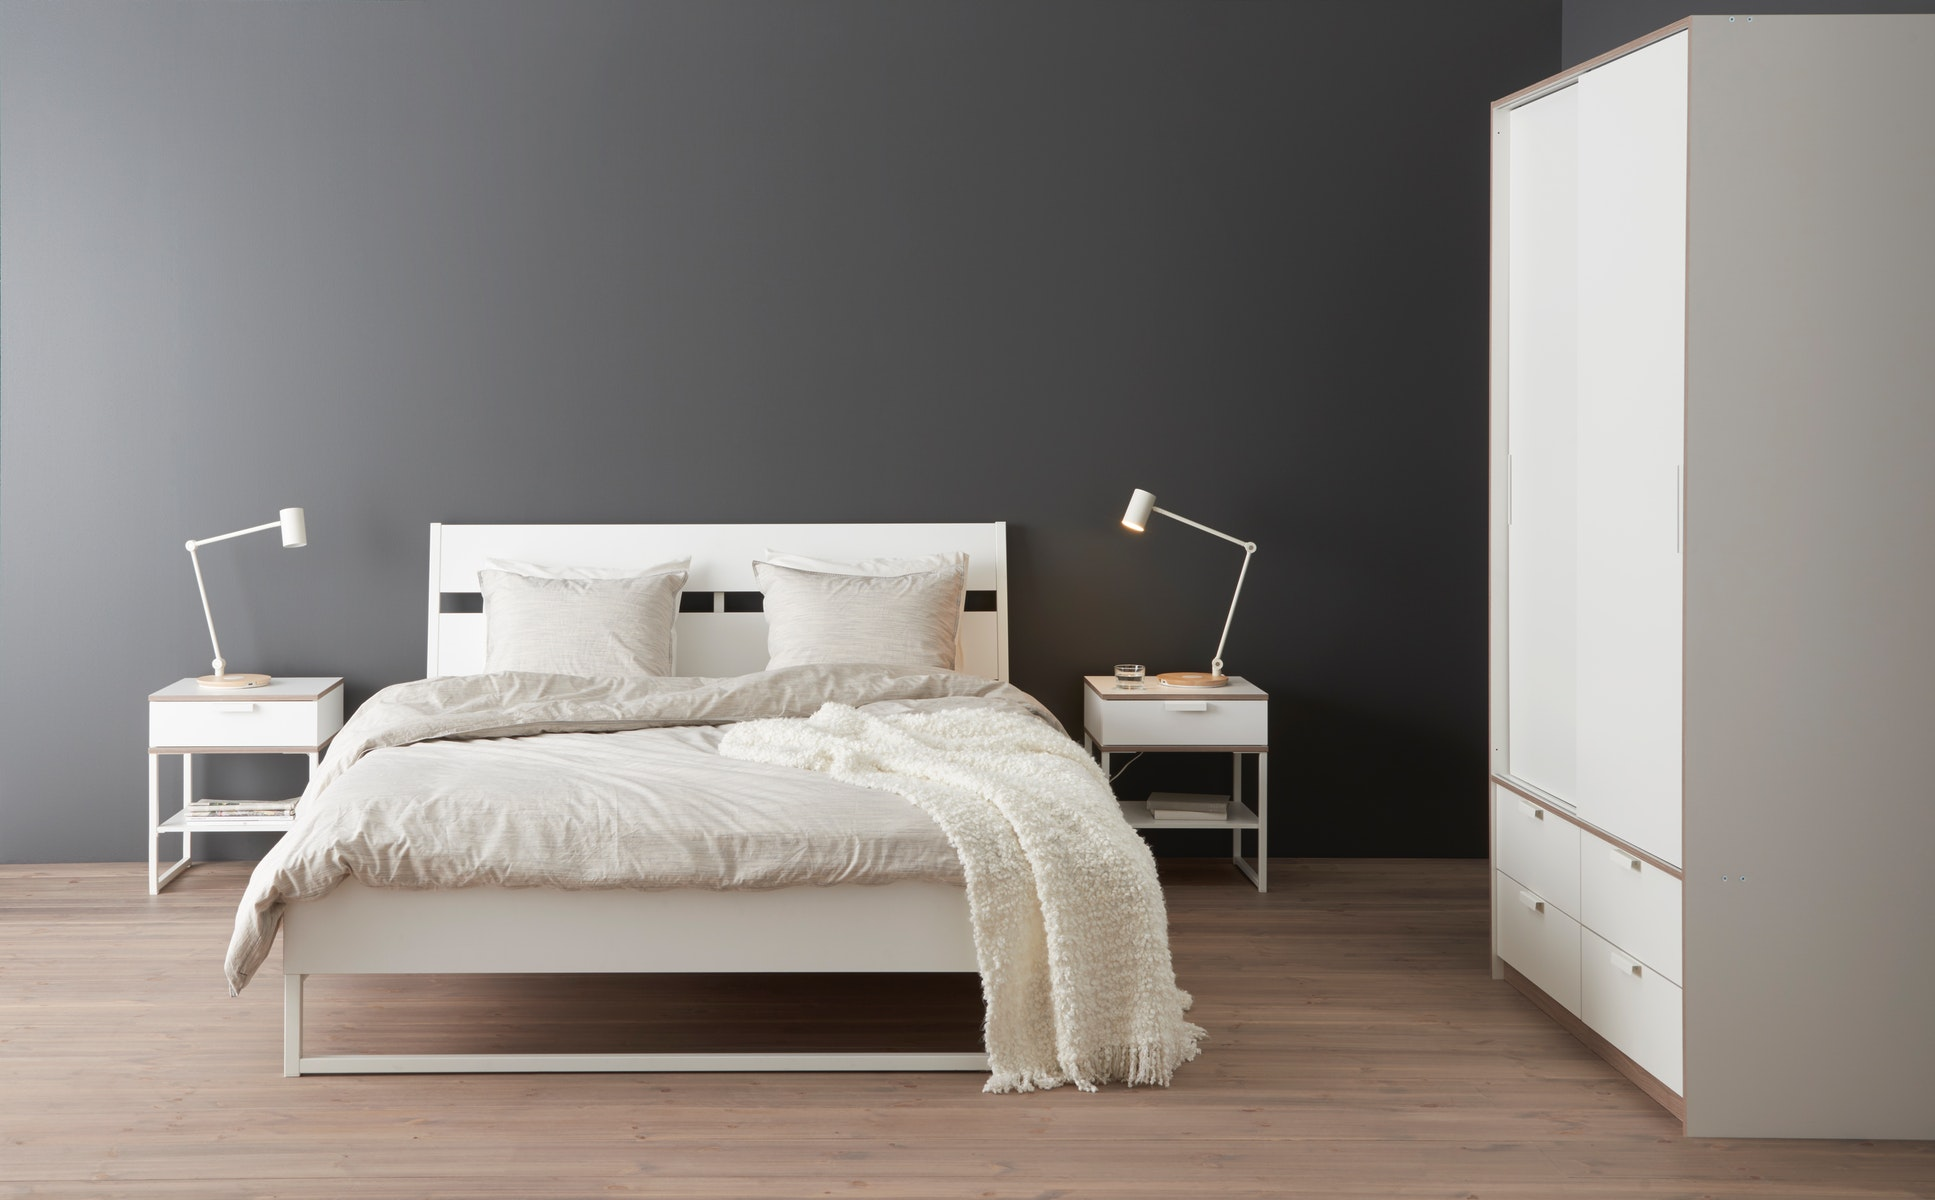 Are you up for some matching, modern, white bedroom furniture? Meet TRYSIL, featuring a bed, bedside table and a wardrobe with a clean, classy design. The angled headboard allows you to sit comfortably when reading in bed.